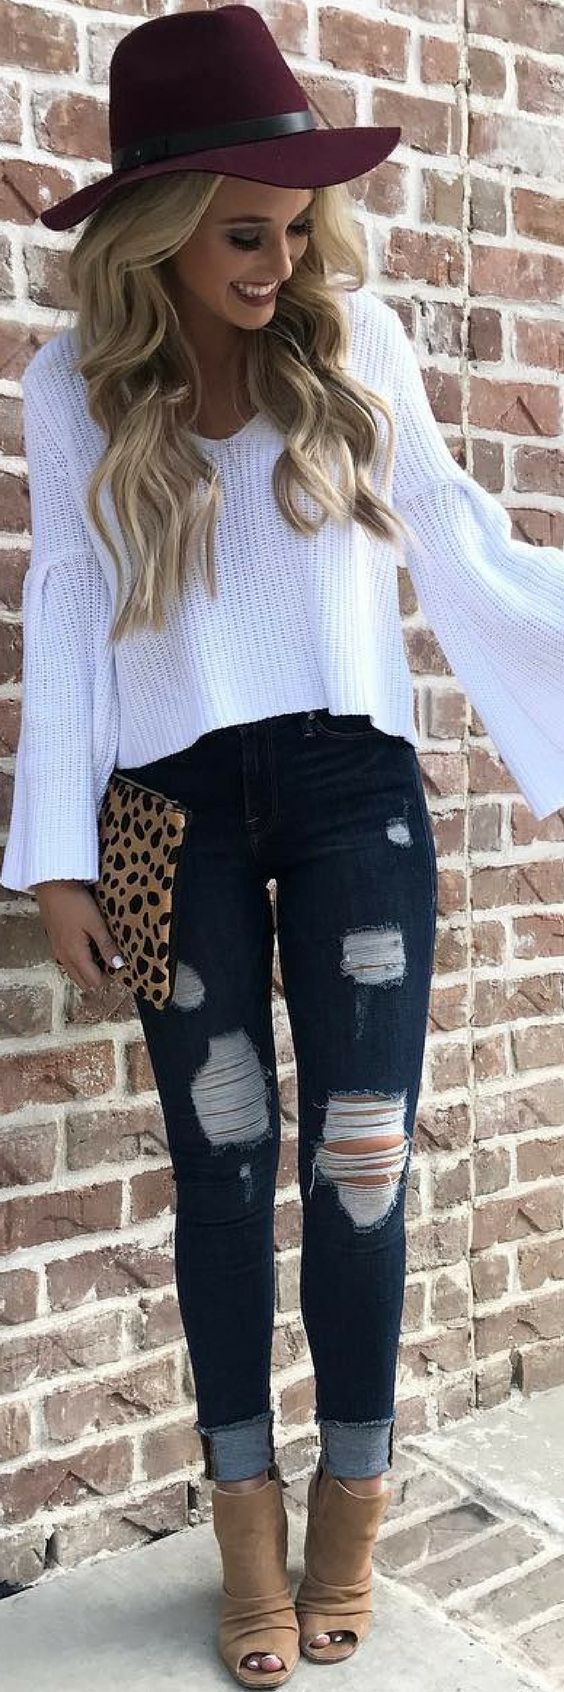 Fall outfit paired with ripped jeans